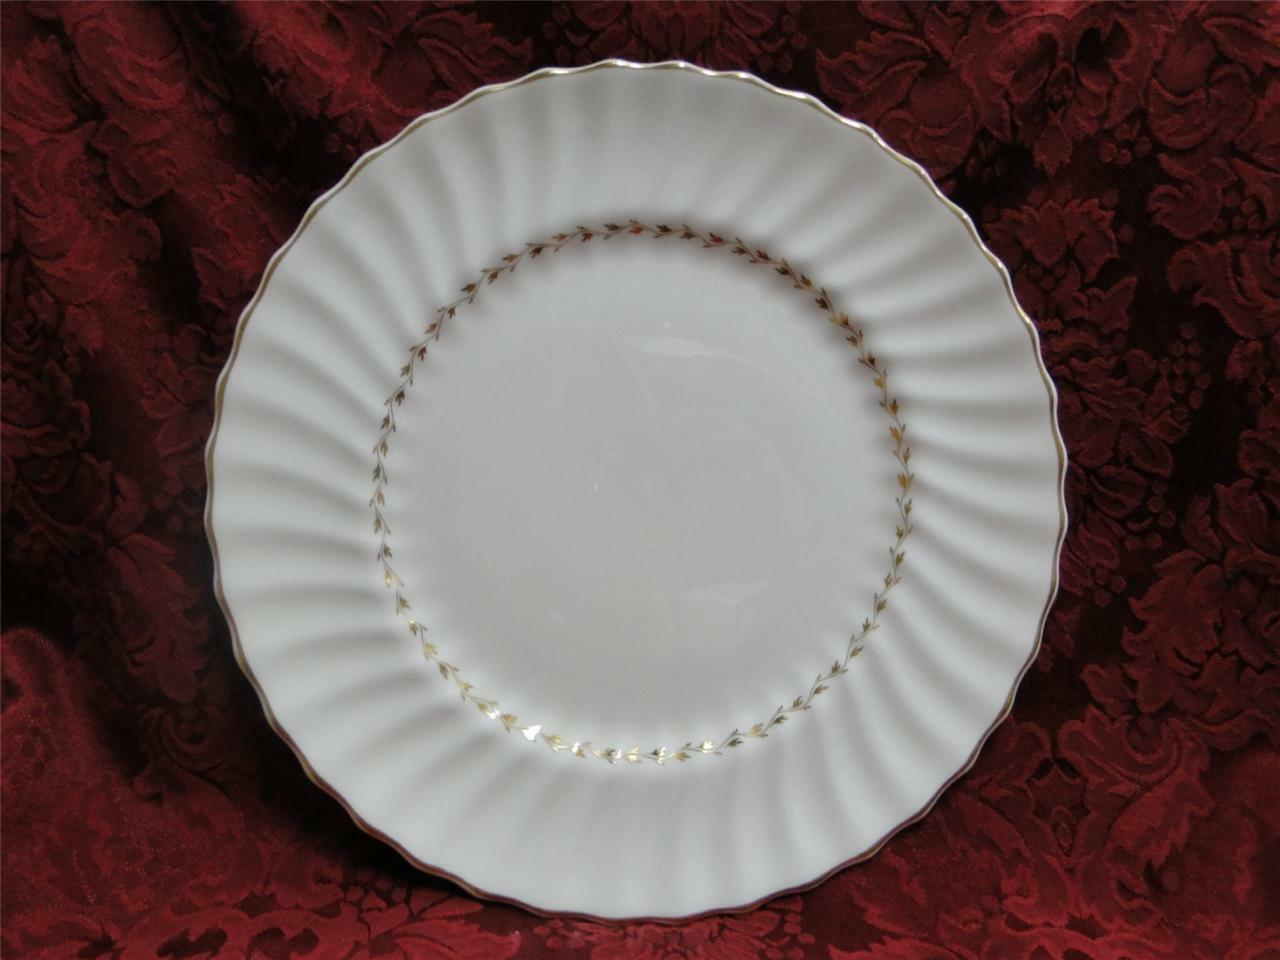 Royal Doulton Adrian, White, Gold Laurel, Swirl Rim: Dinner Plate (s), 10.5""